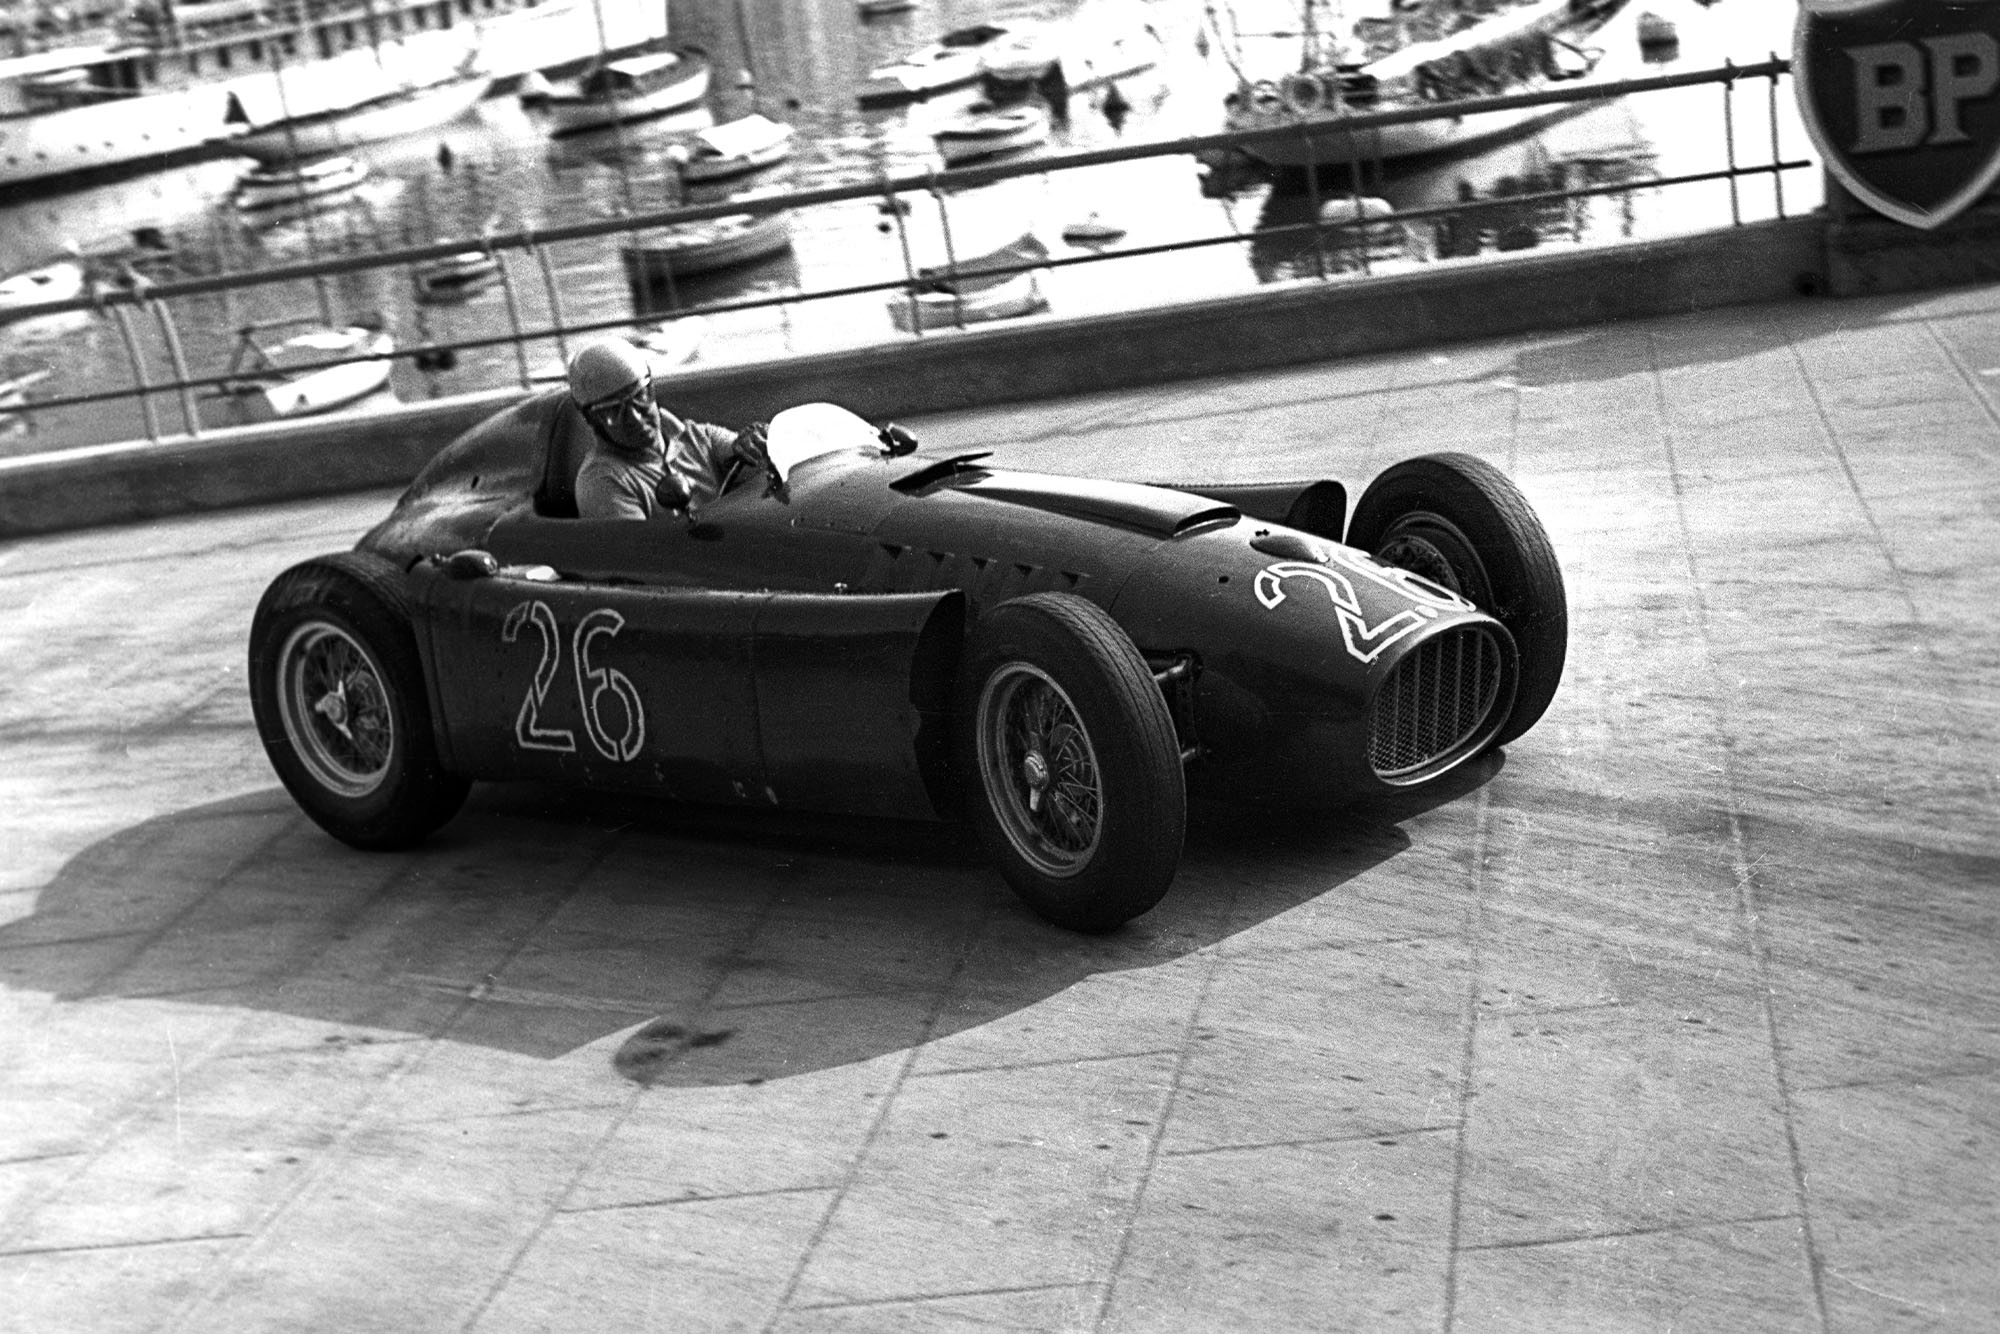 Alberto Ascari, Lancia D50, Grand Prix of Monaco, Circuit de Monaco, 22 May 1955. Alberto Ascari at the wheel of the Lancia D50 in the 1955 Monaco Grand Prix where, while in the lead, he crashed through the barriers into the harbour and had to swim to safety. Four days later, he was killed while testing in Monza.